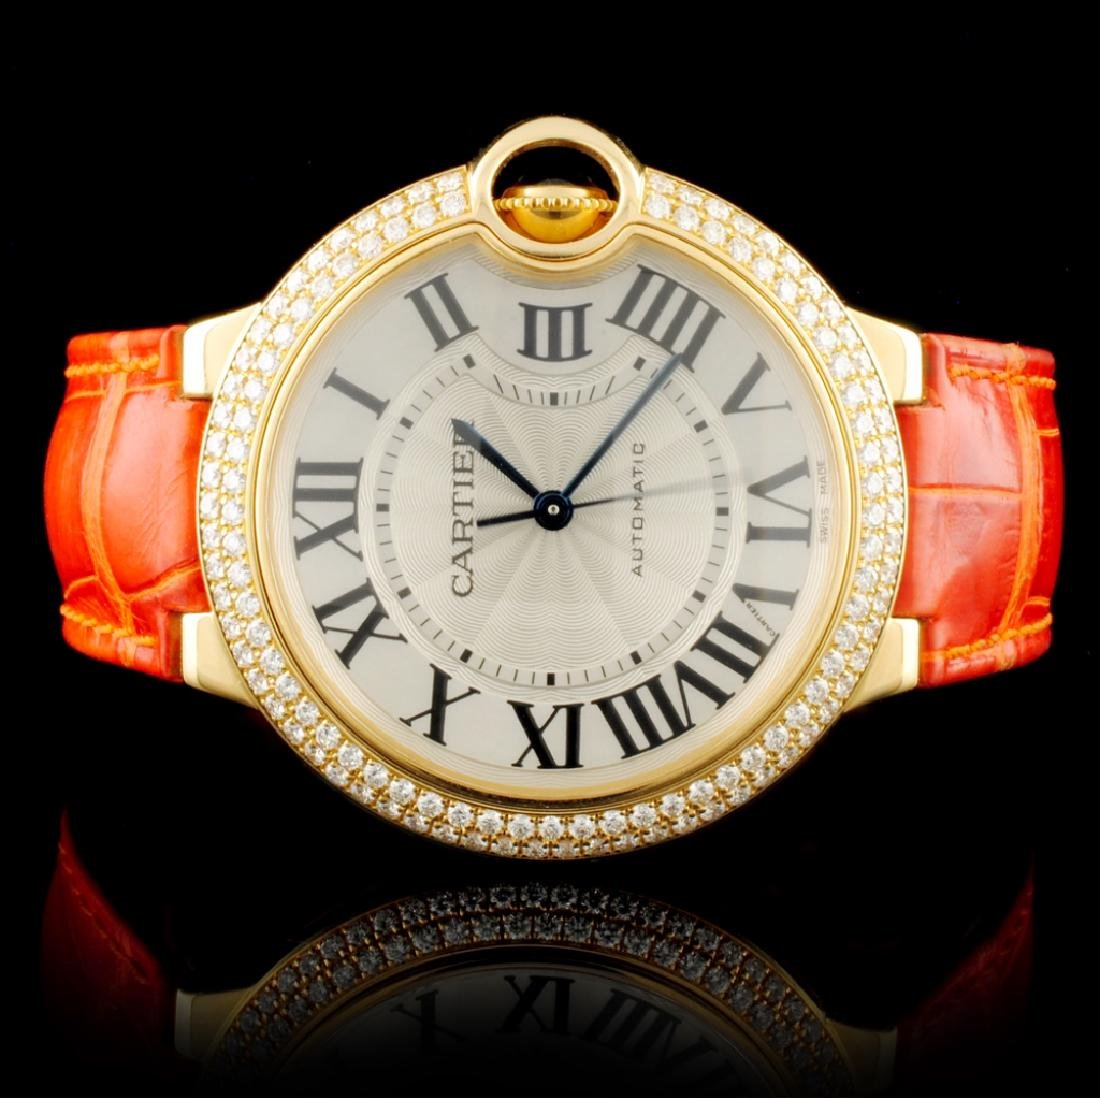 Cartier Ballon Bleu 18K YG Diamond 36MM Watch